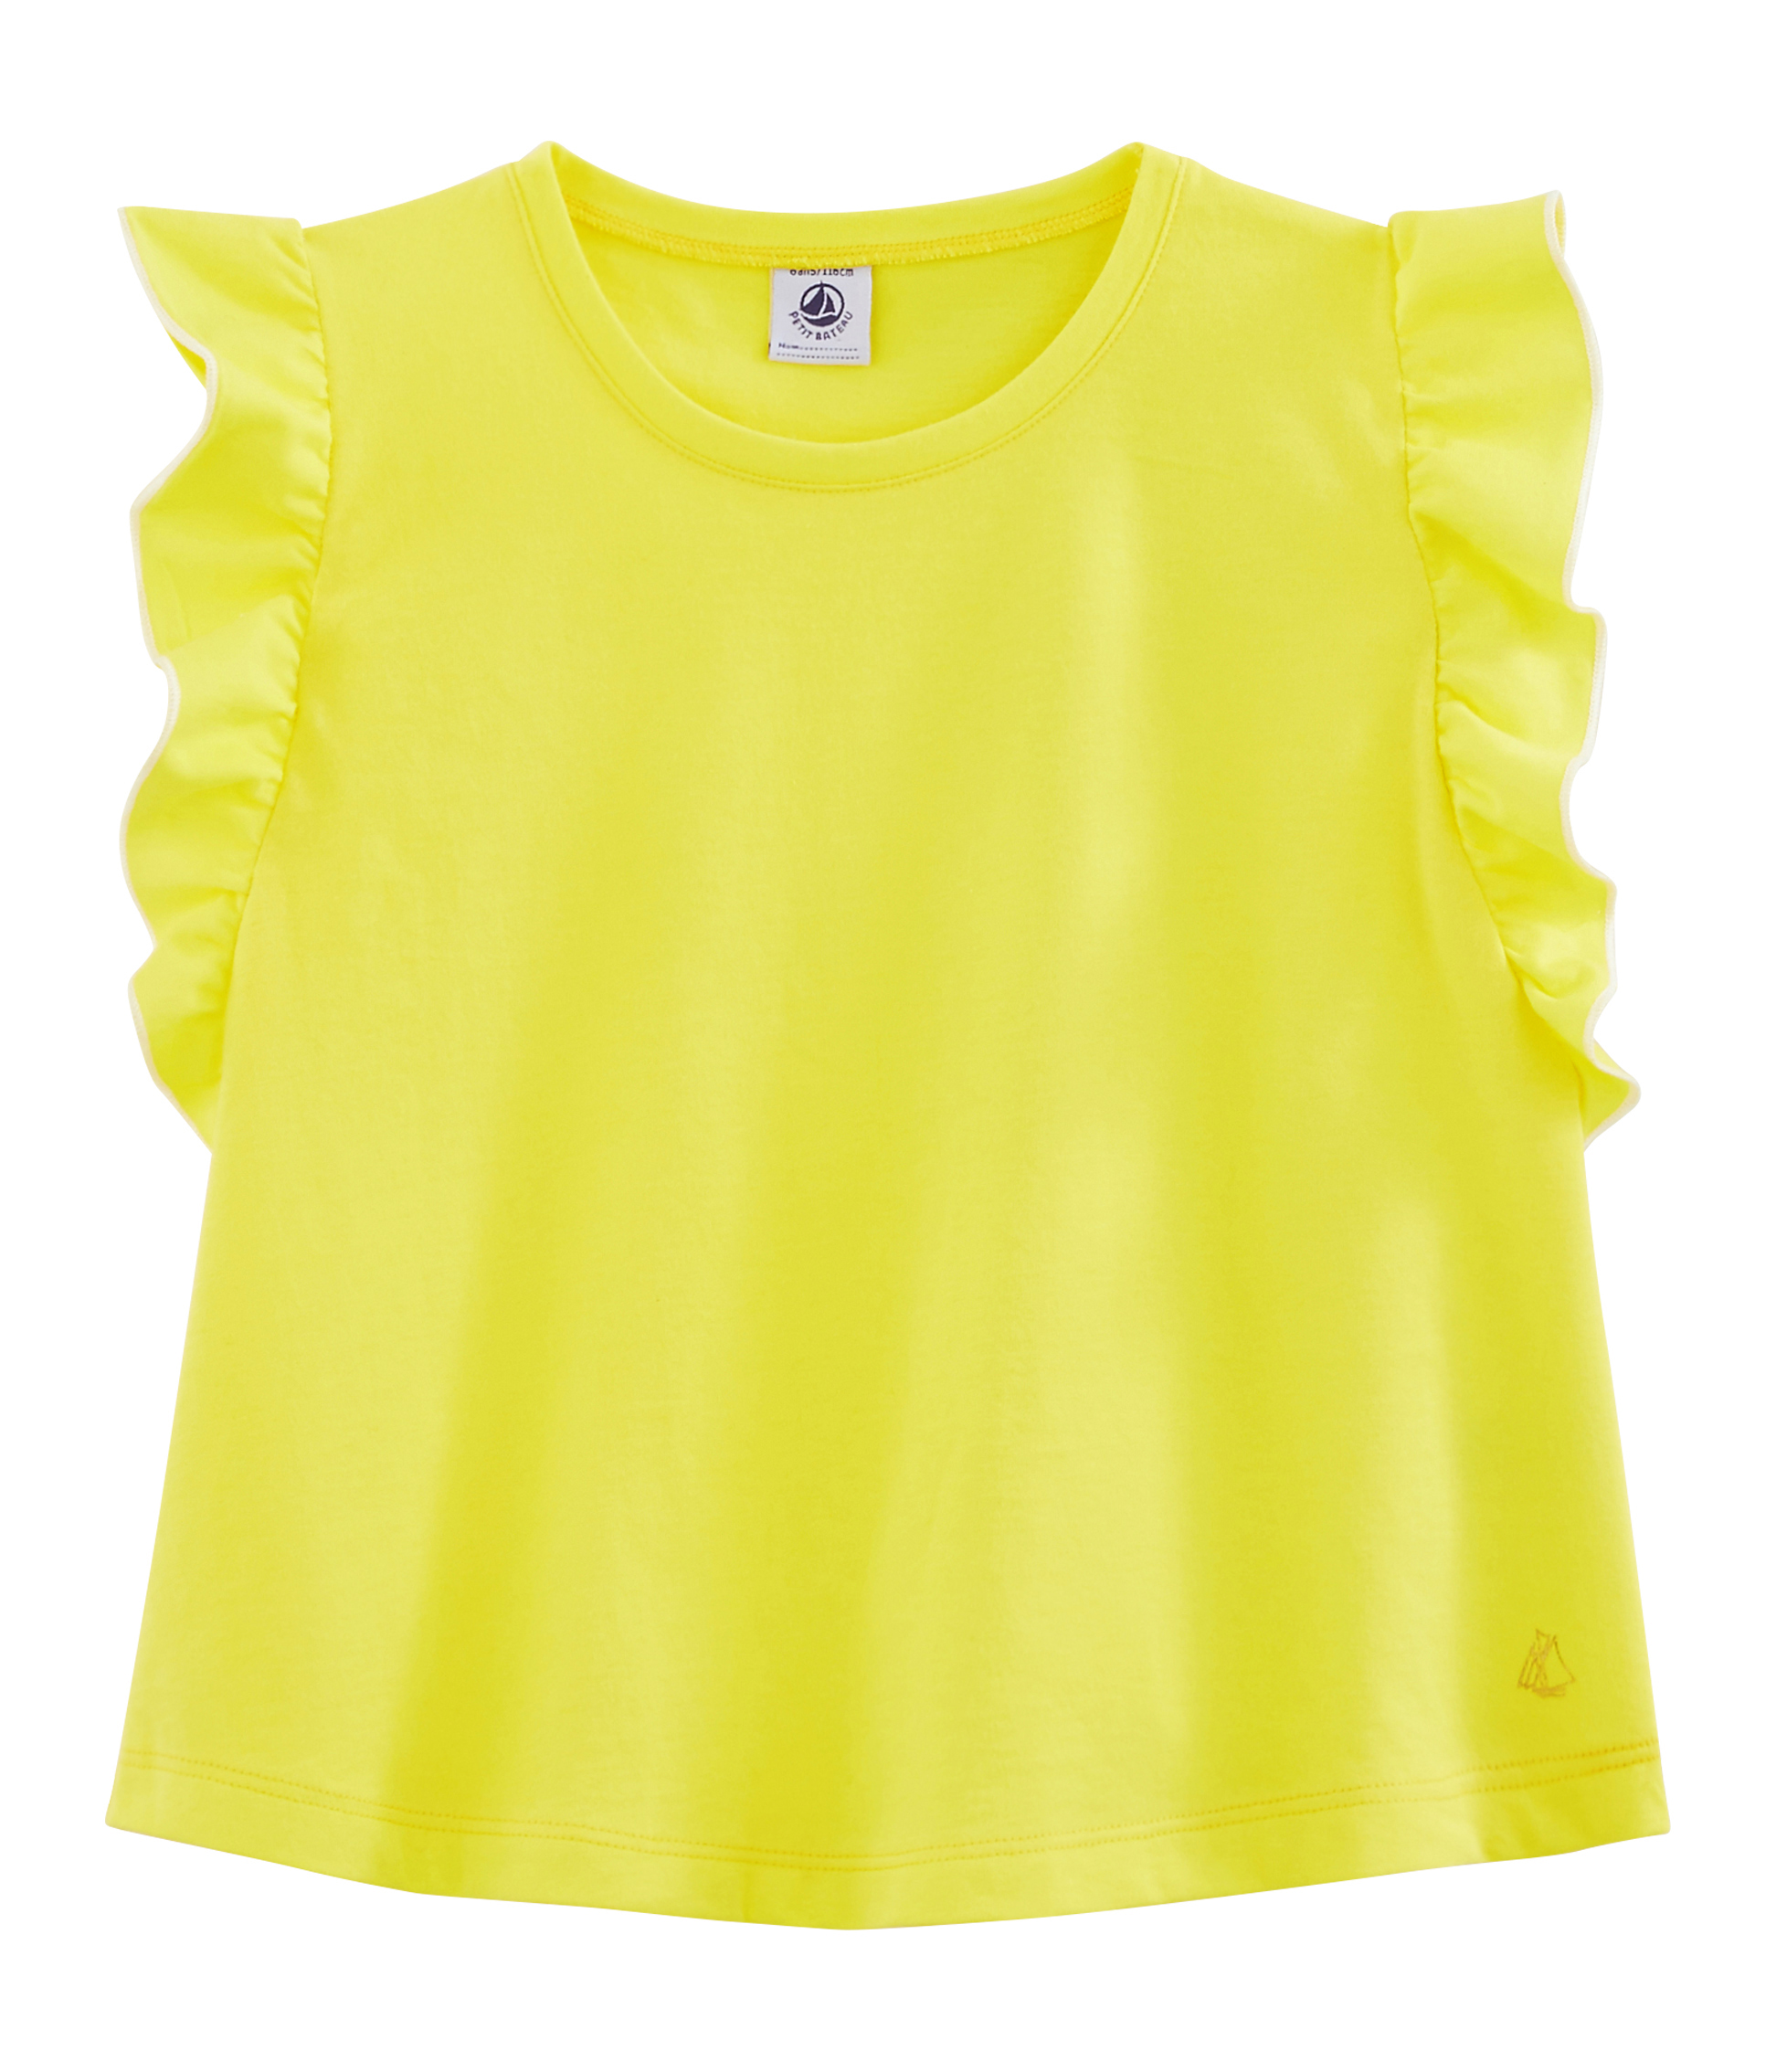 Girls' Top